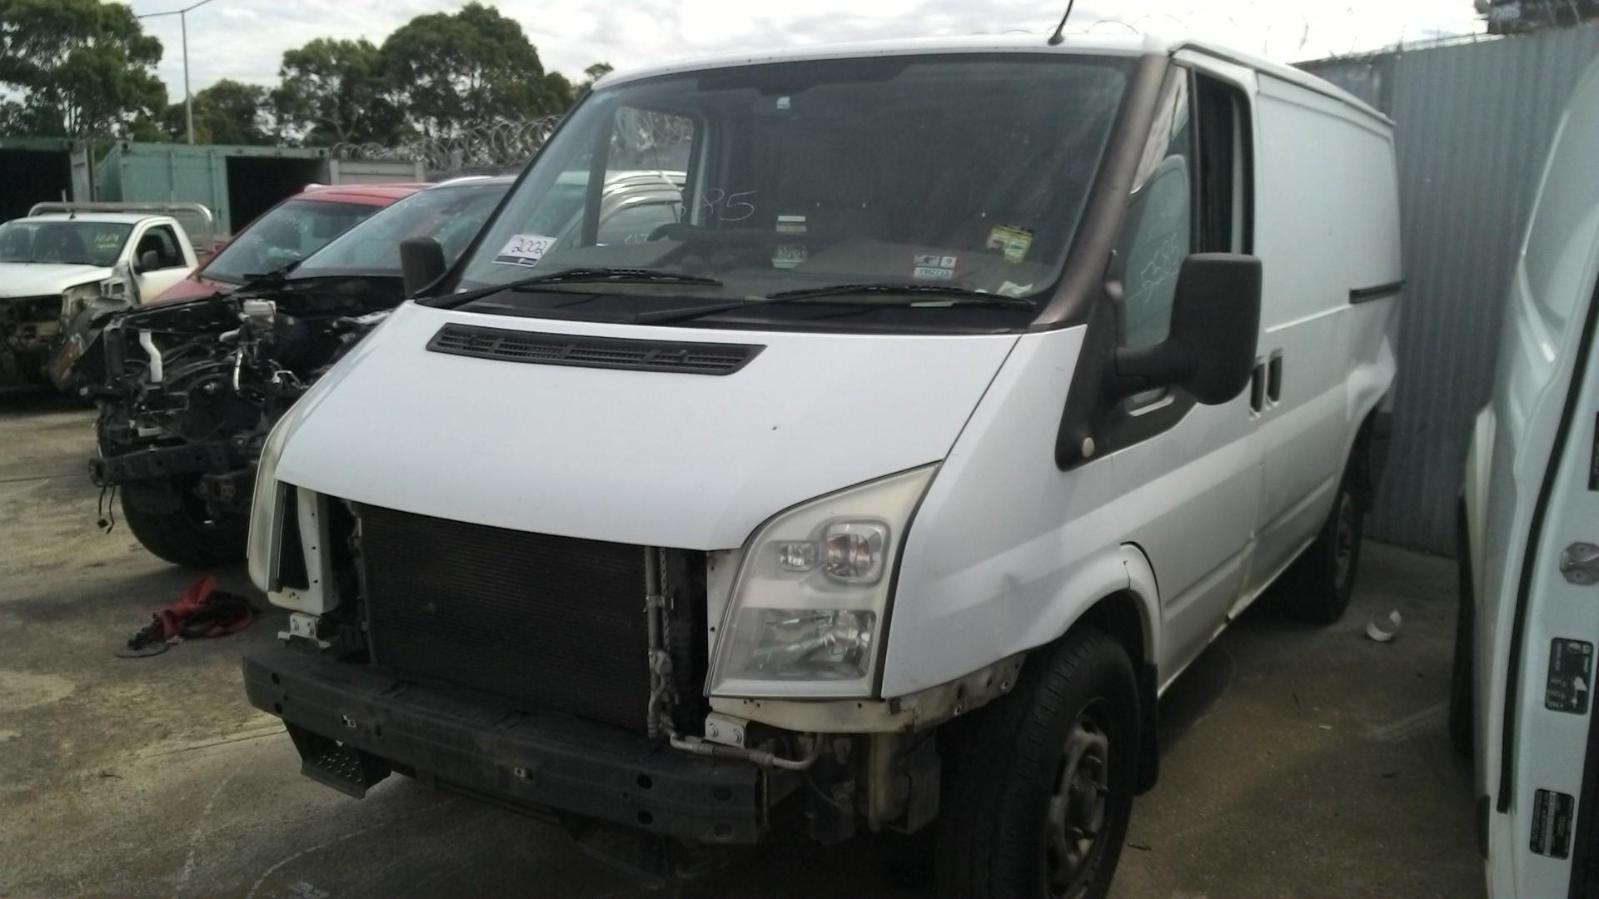 Details about FORD TRANSIT REAR DIFF ASSEMBLY VM, VAN, SINGLE WHEEL, 6  SPEED, 4 27 RATIO, 09/0